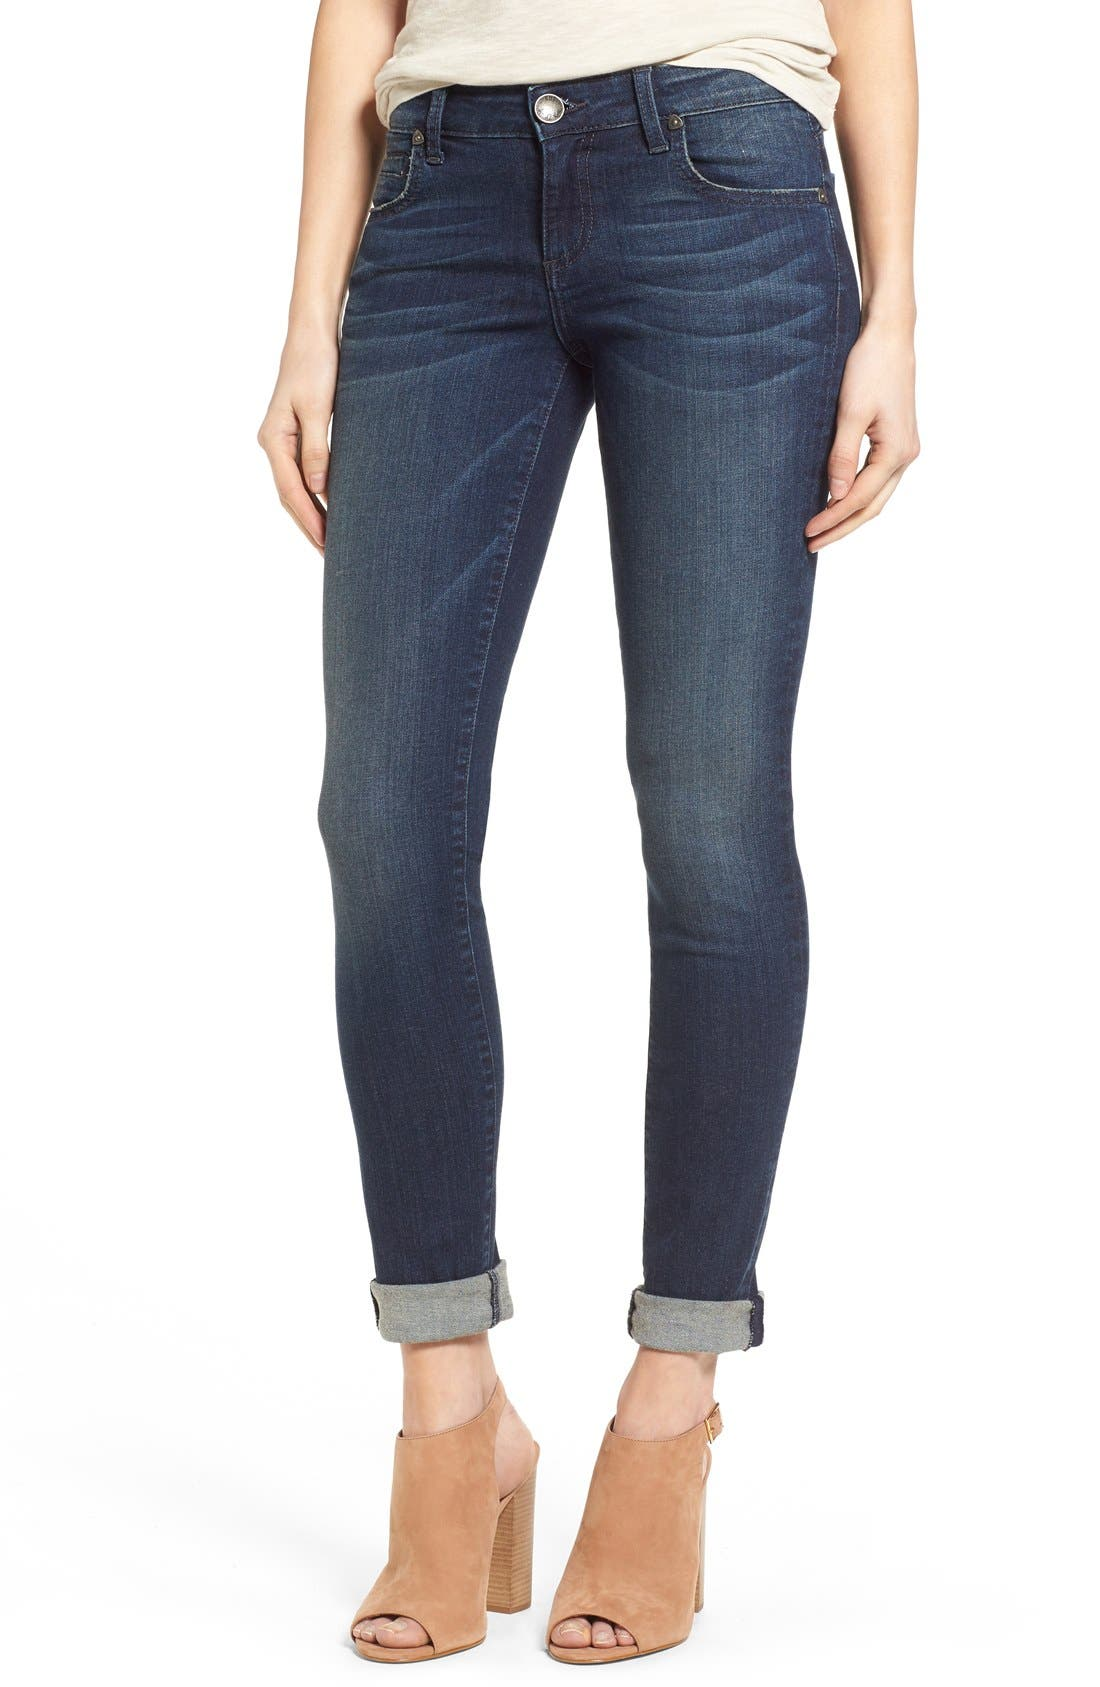 Main Image - KUT from the Kloth 'Catherine' Slim Boyfriend Jeans (Carefulness) (Regular & Petite)